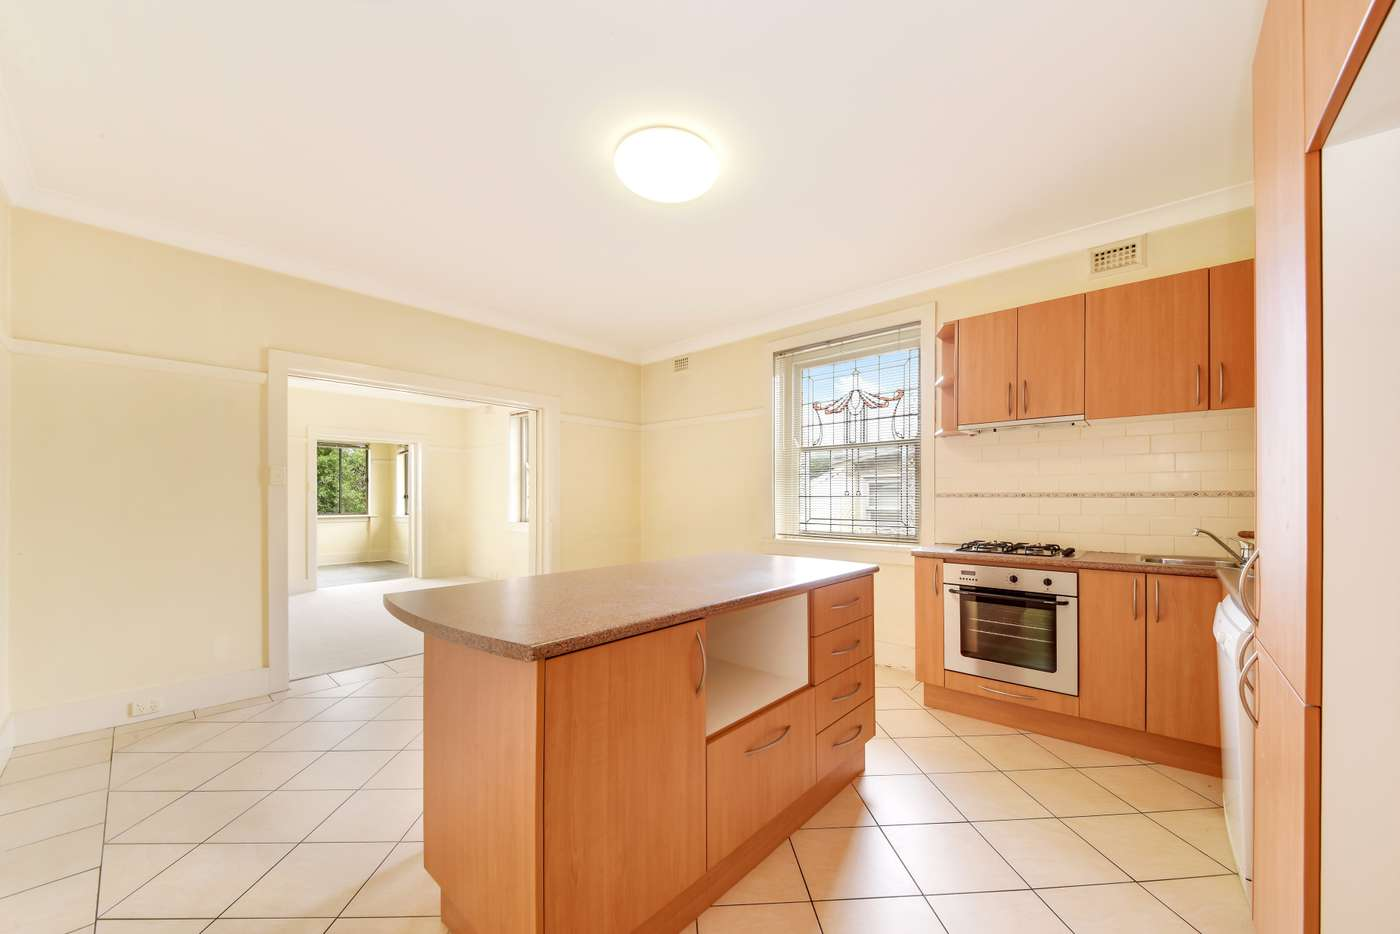 Sixth view of Homely apartment listing, 3/14 Florence Street, Cremorne NSW 2090